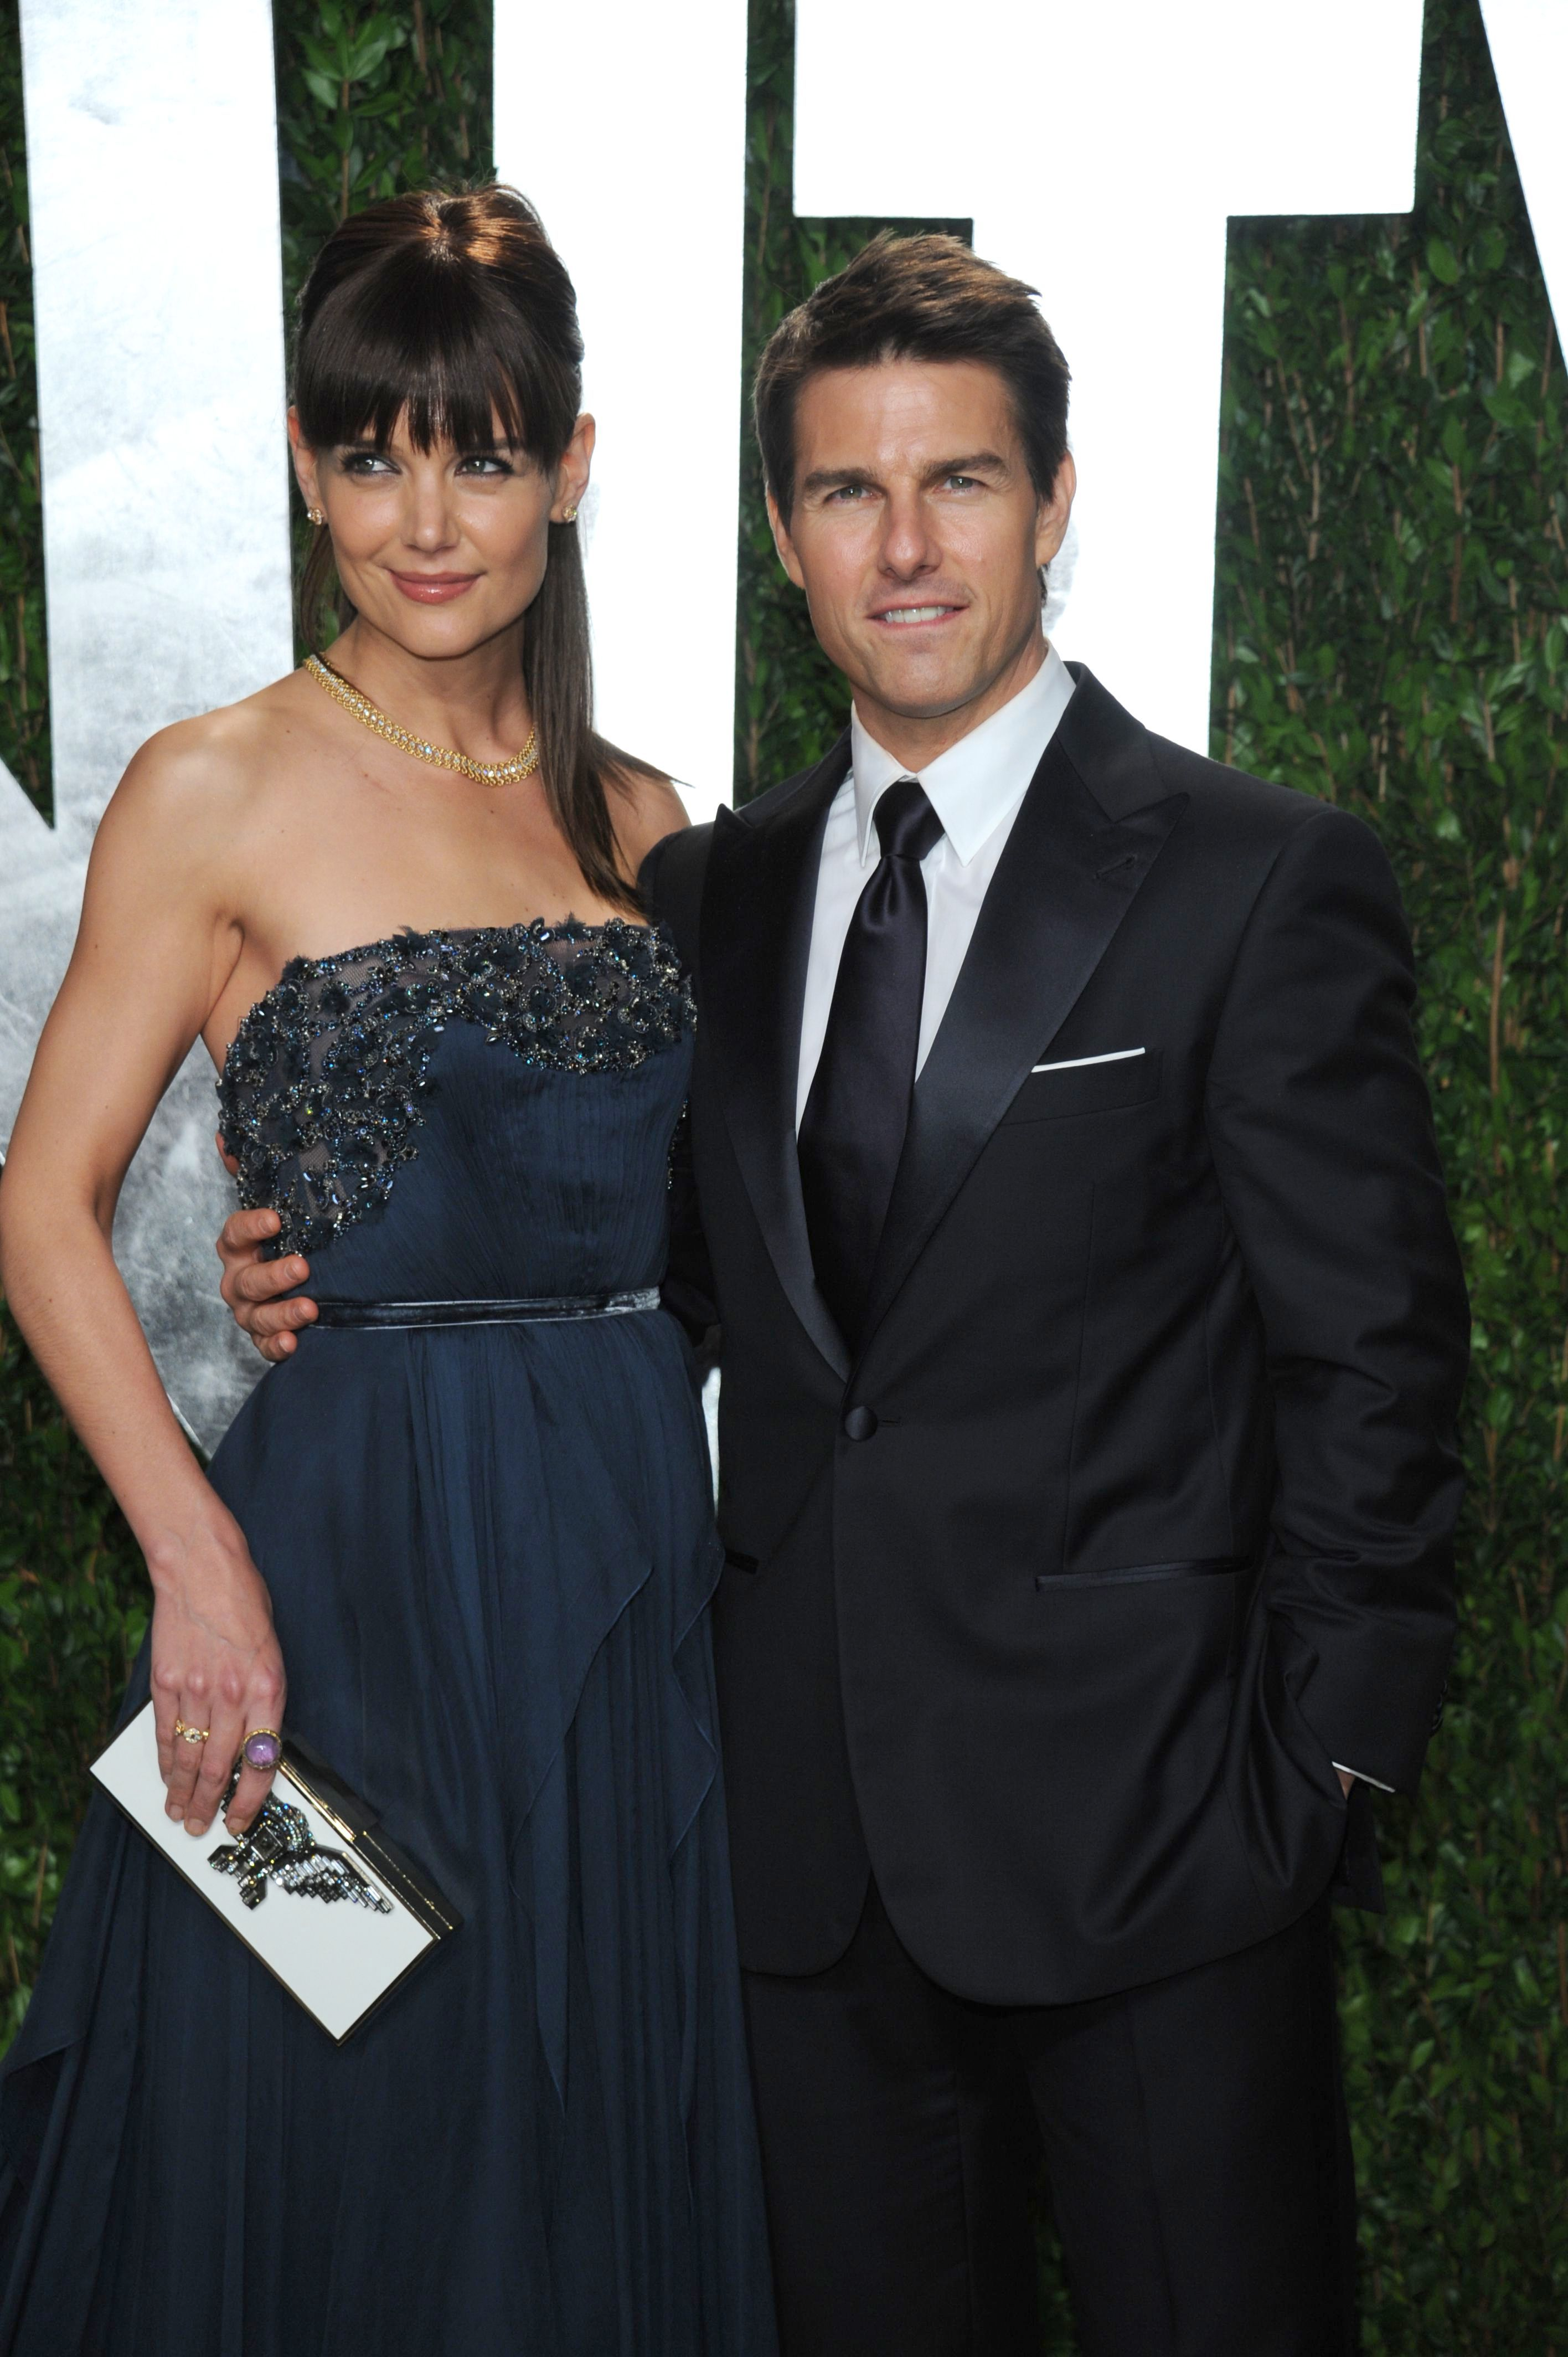 Katie Holmes and Tom Cruise attend the 84th Annual Academy Awards Vanity Fair Party in Los Angeles on Feb. 26, 2012.